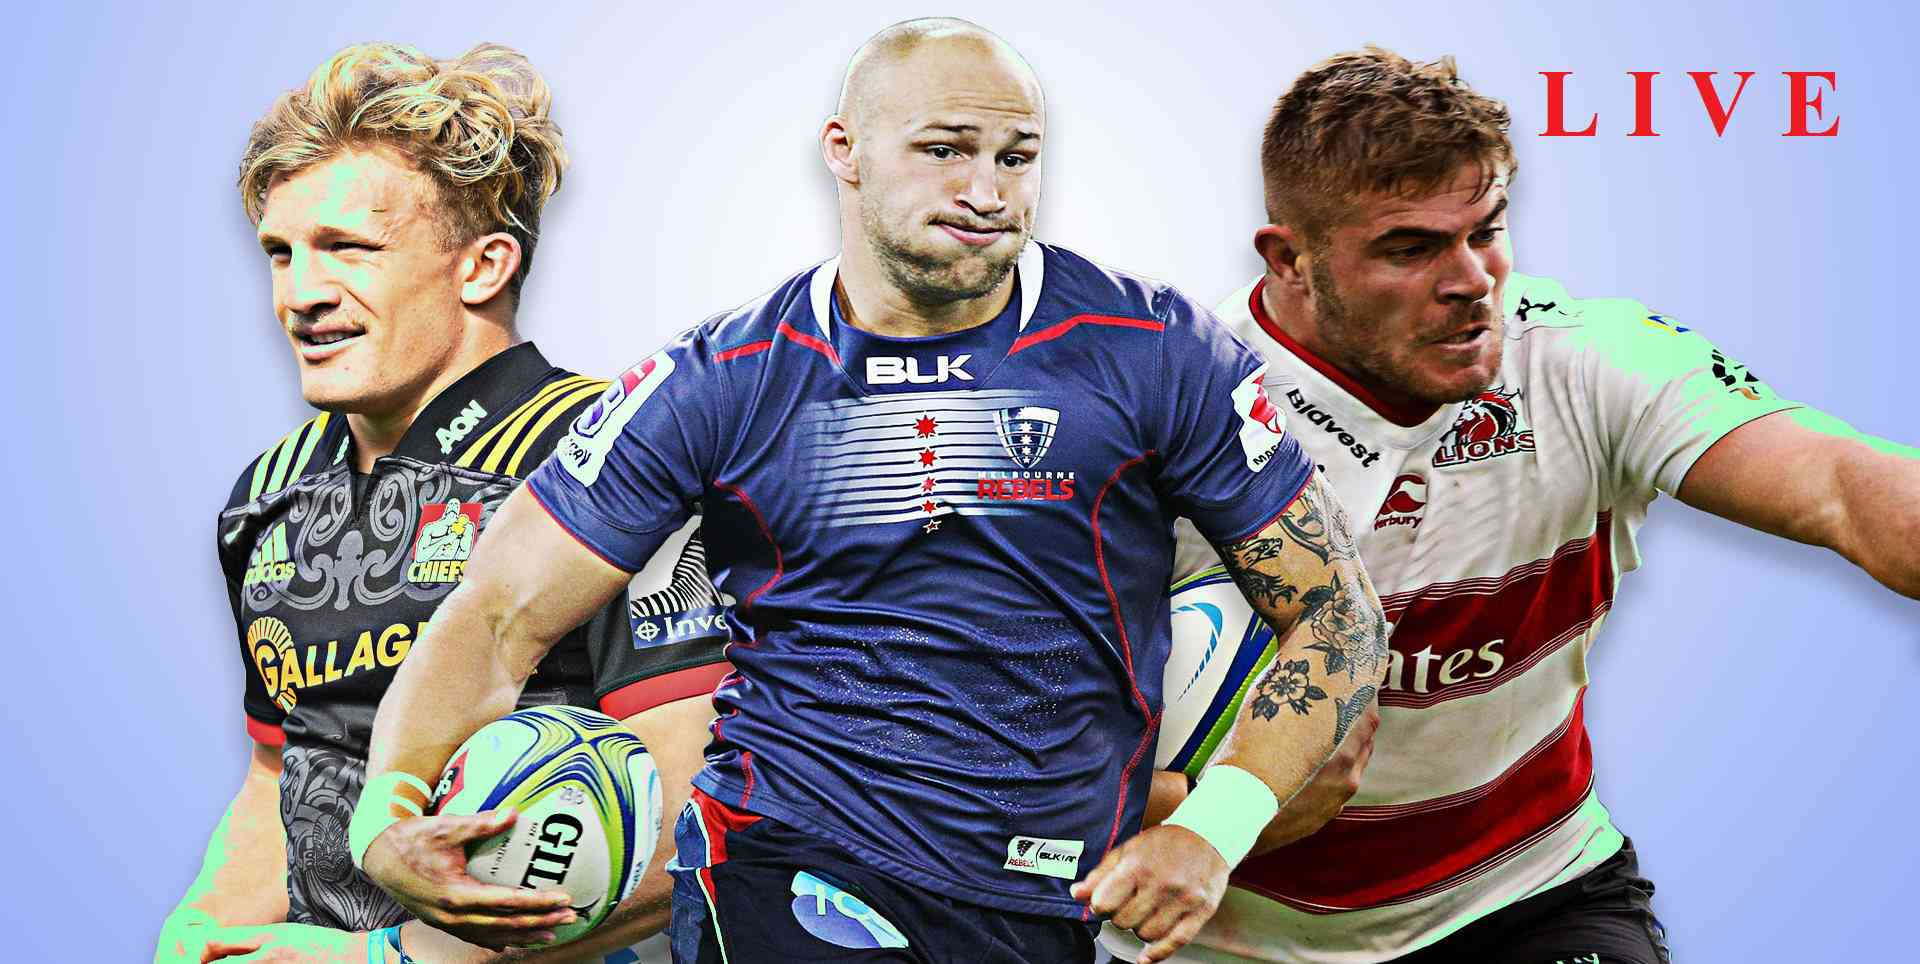 live-cheetahs-vs-hurricanes-online